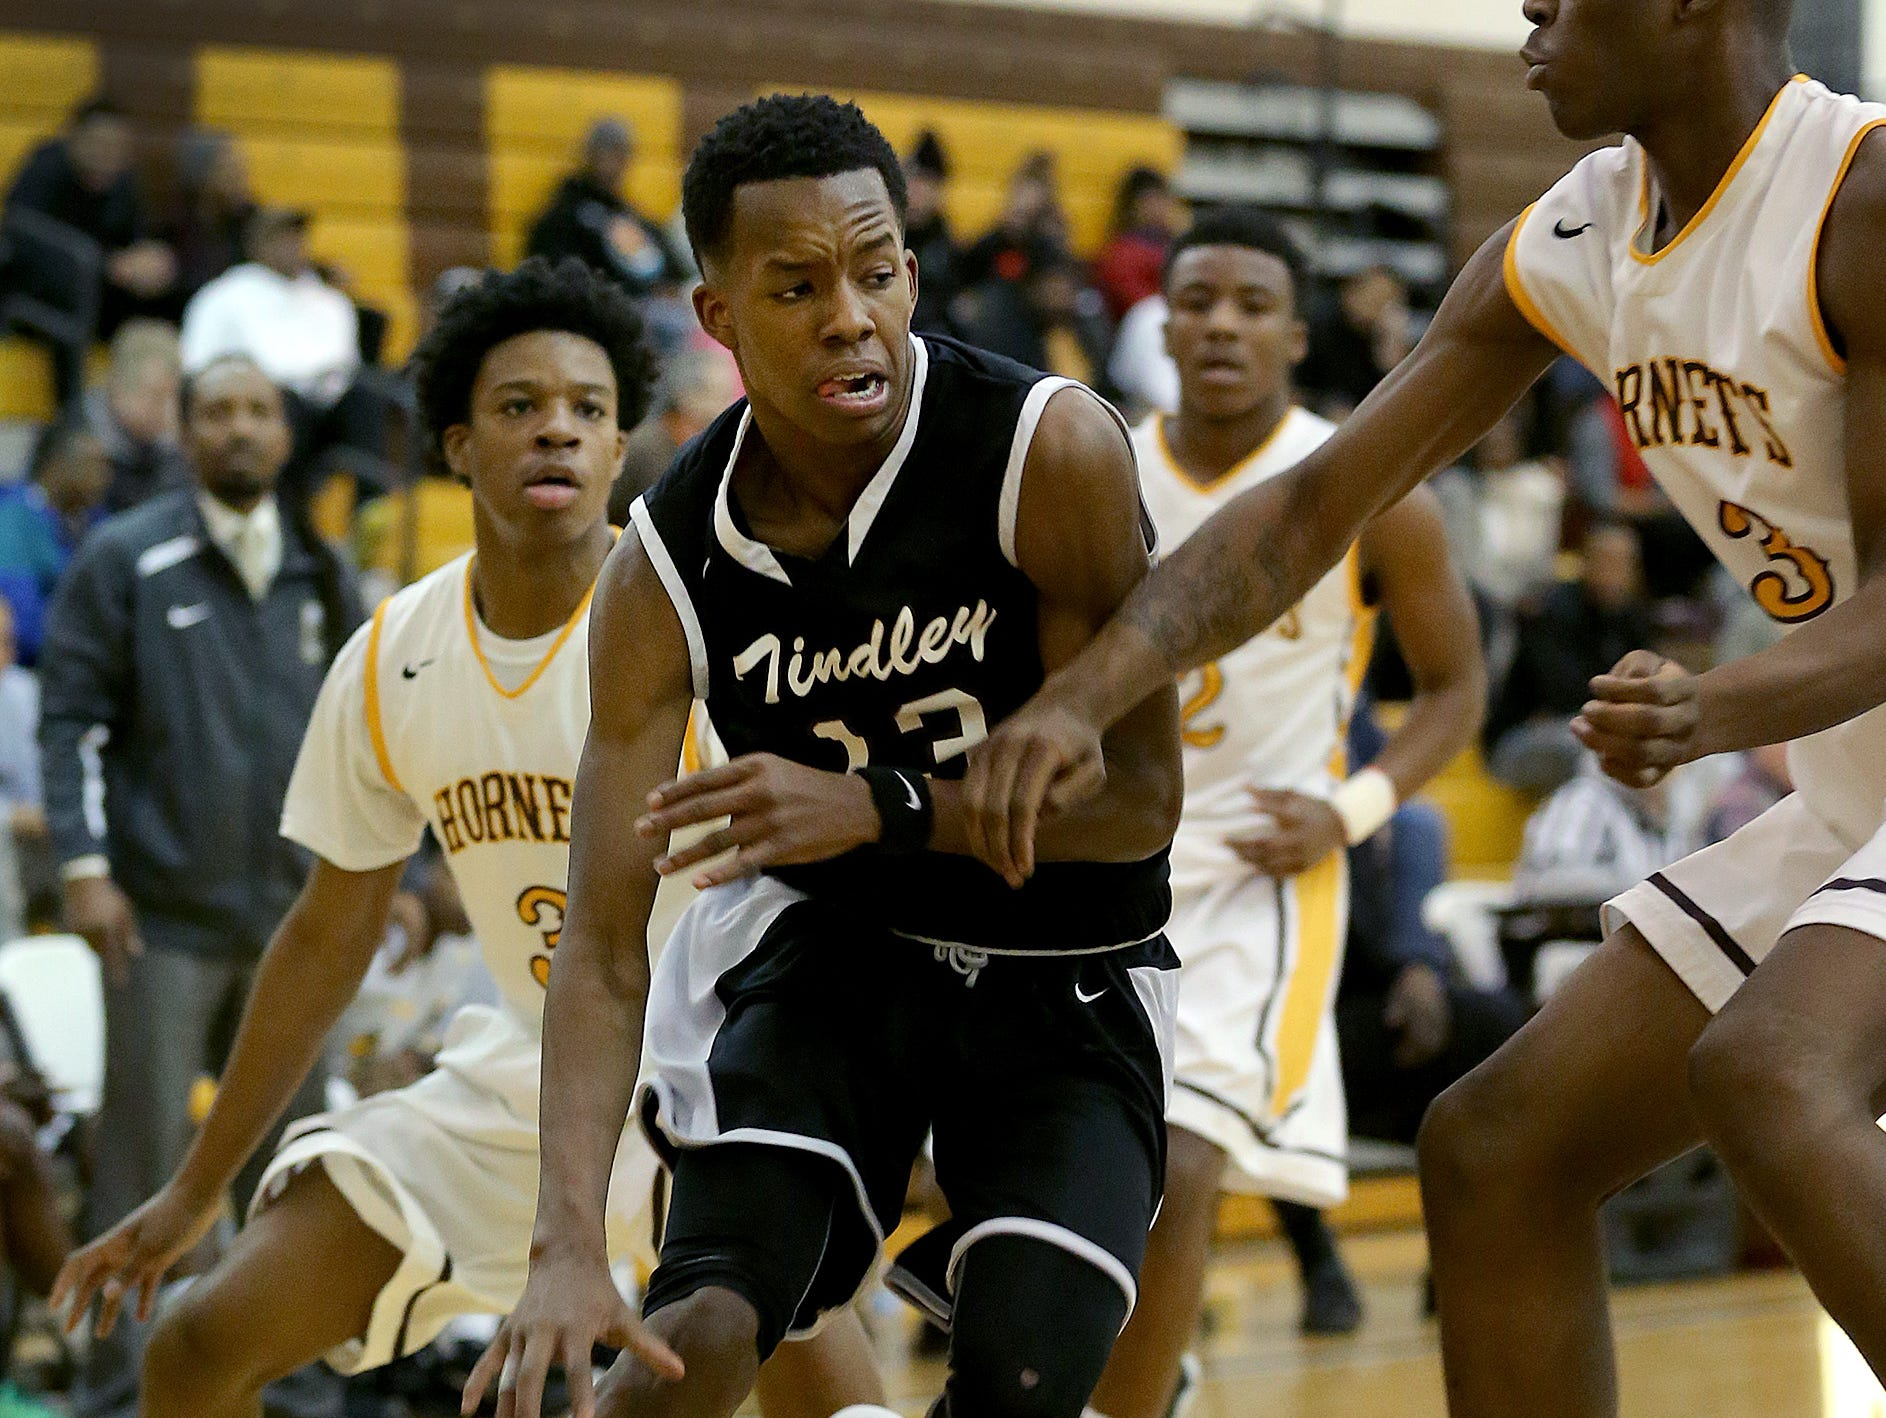 Tindley junior Eric Hunter has already surpassed 1,000 career points.